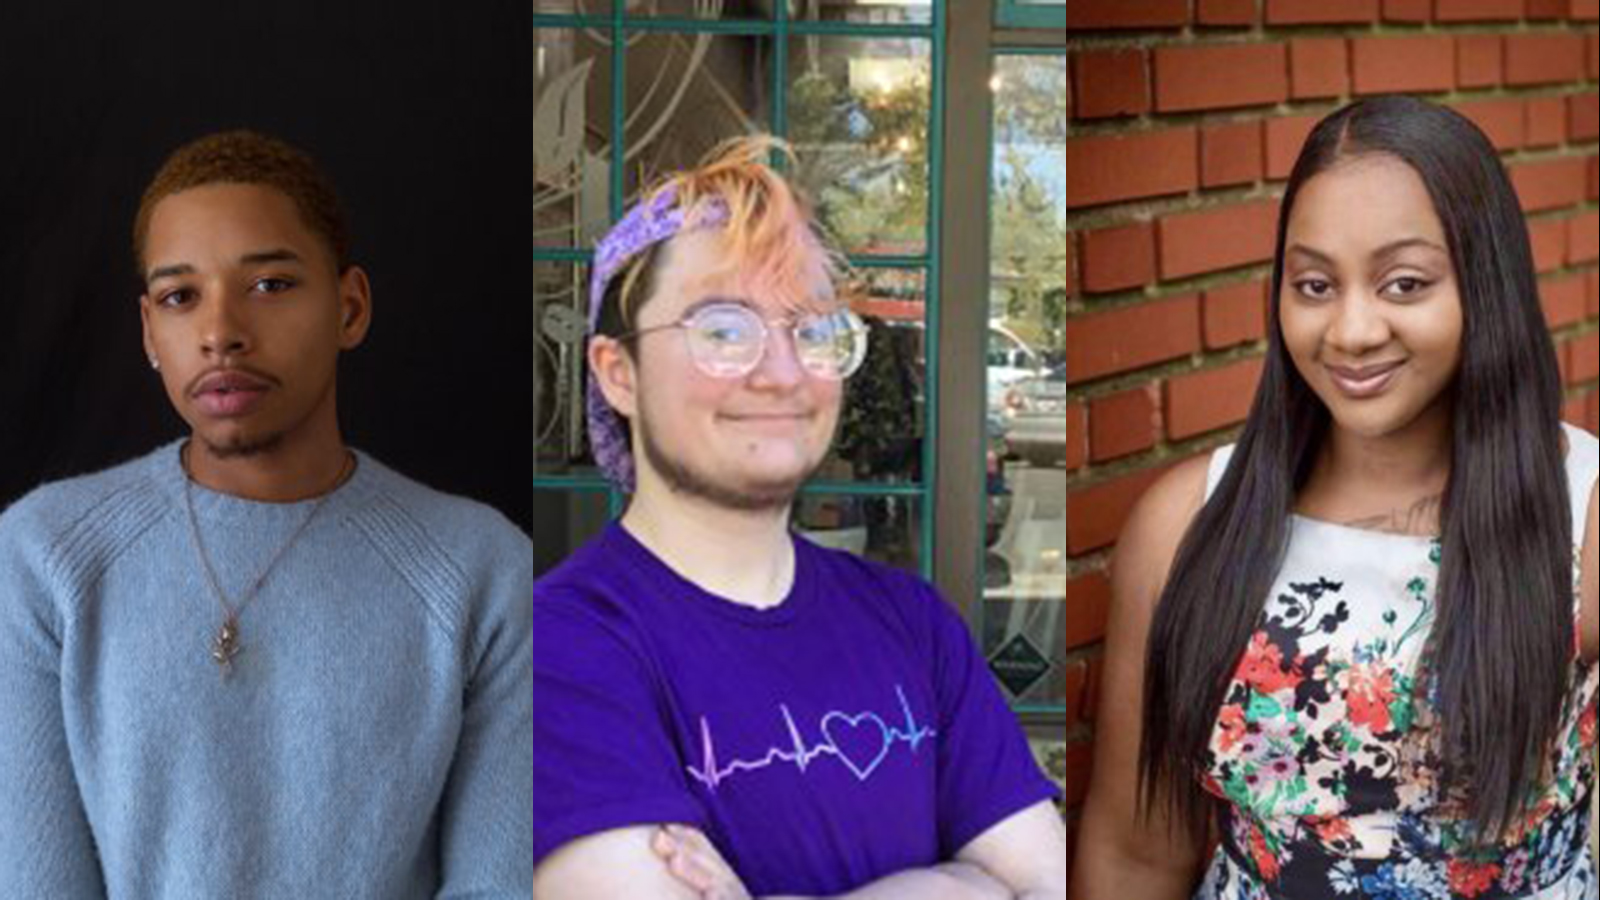 National Foster Care Month: Meet Christian, Patrick and Sonia